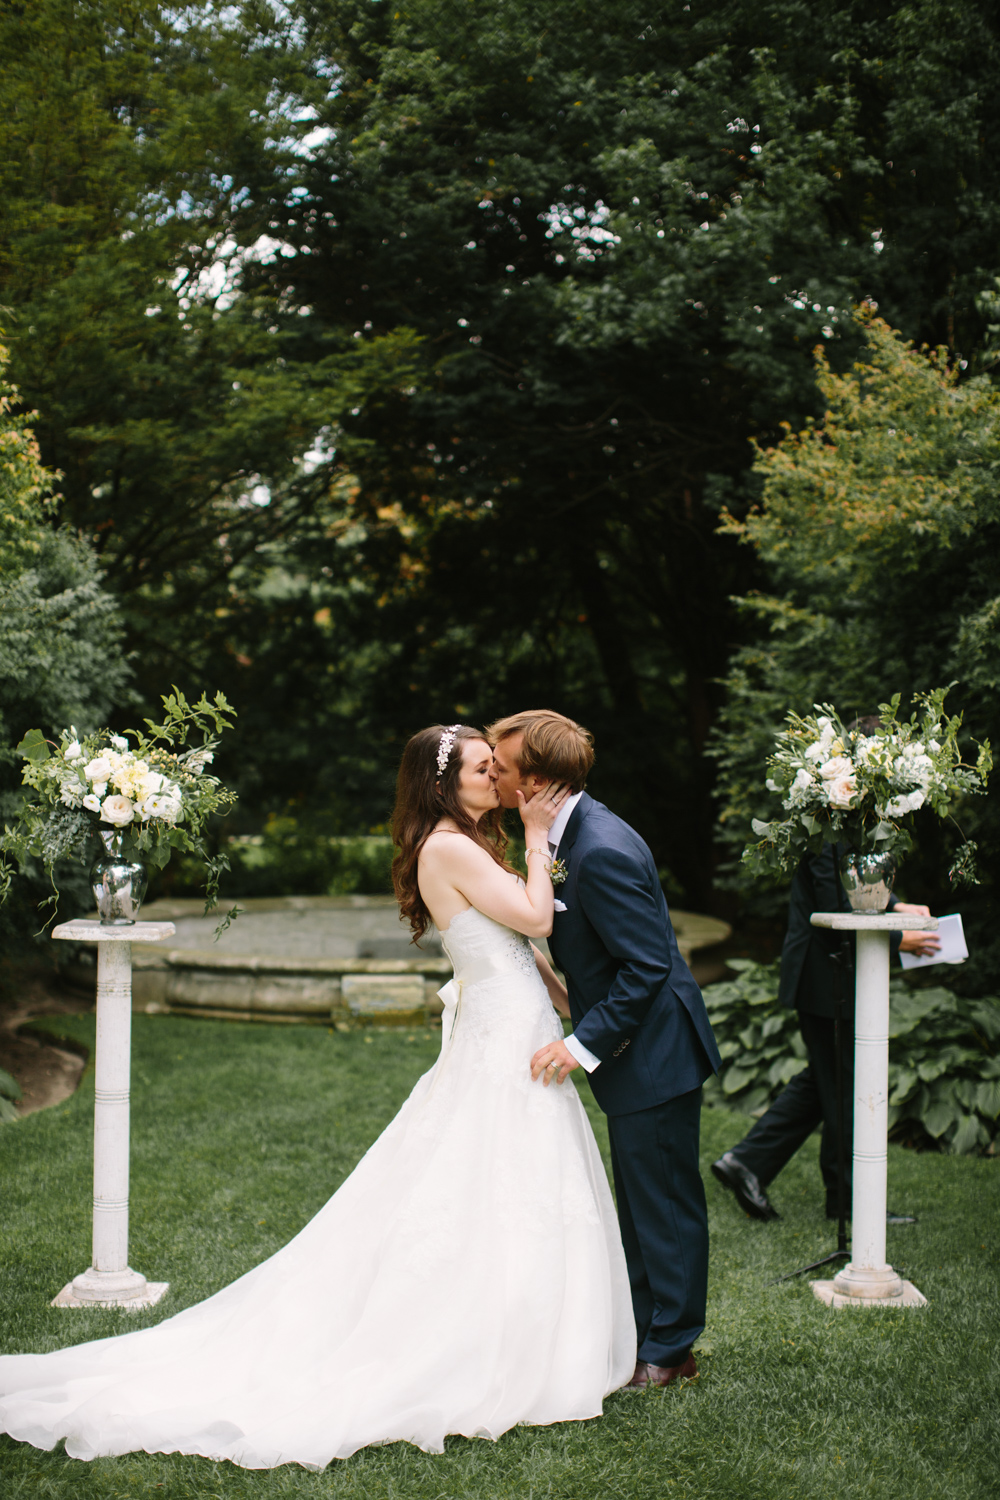 The garden ceremony kiss